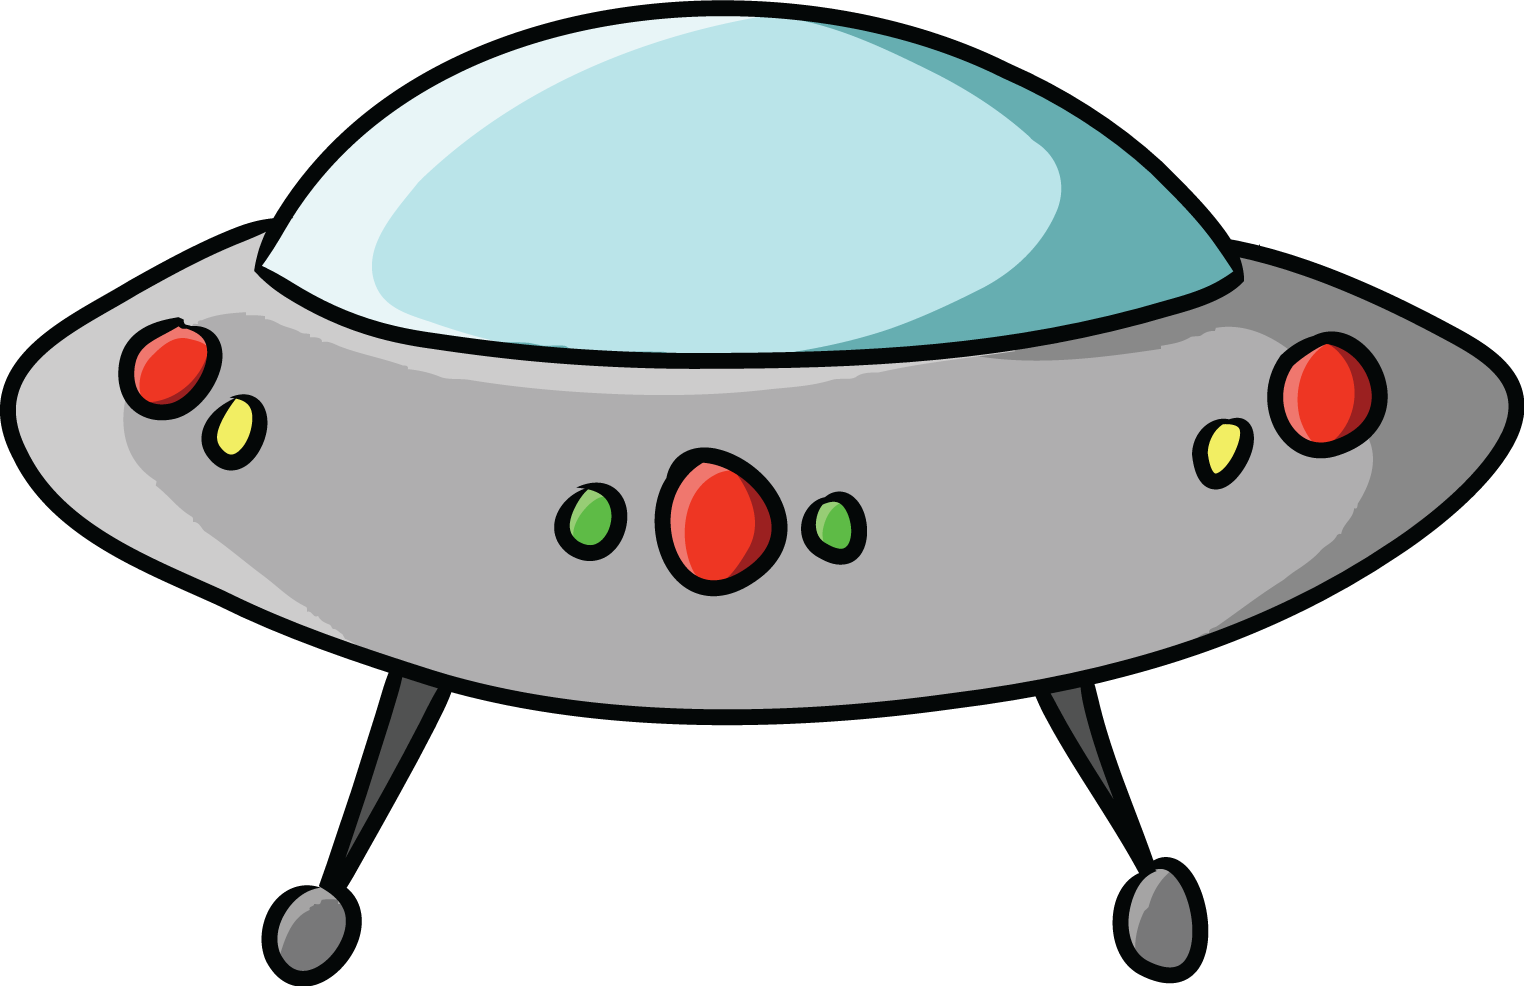 Galaxy clipart spaceship. Collection of ufo sightings